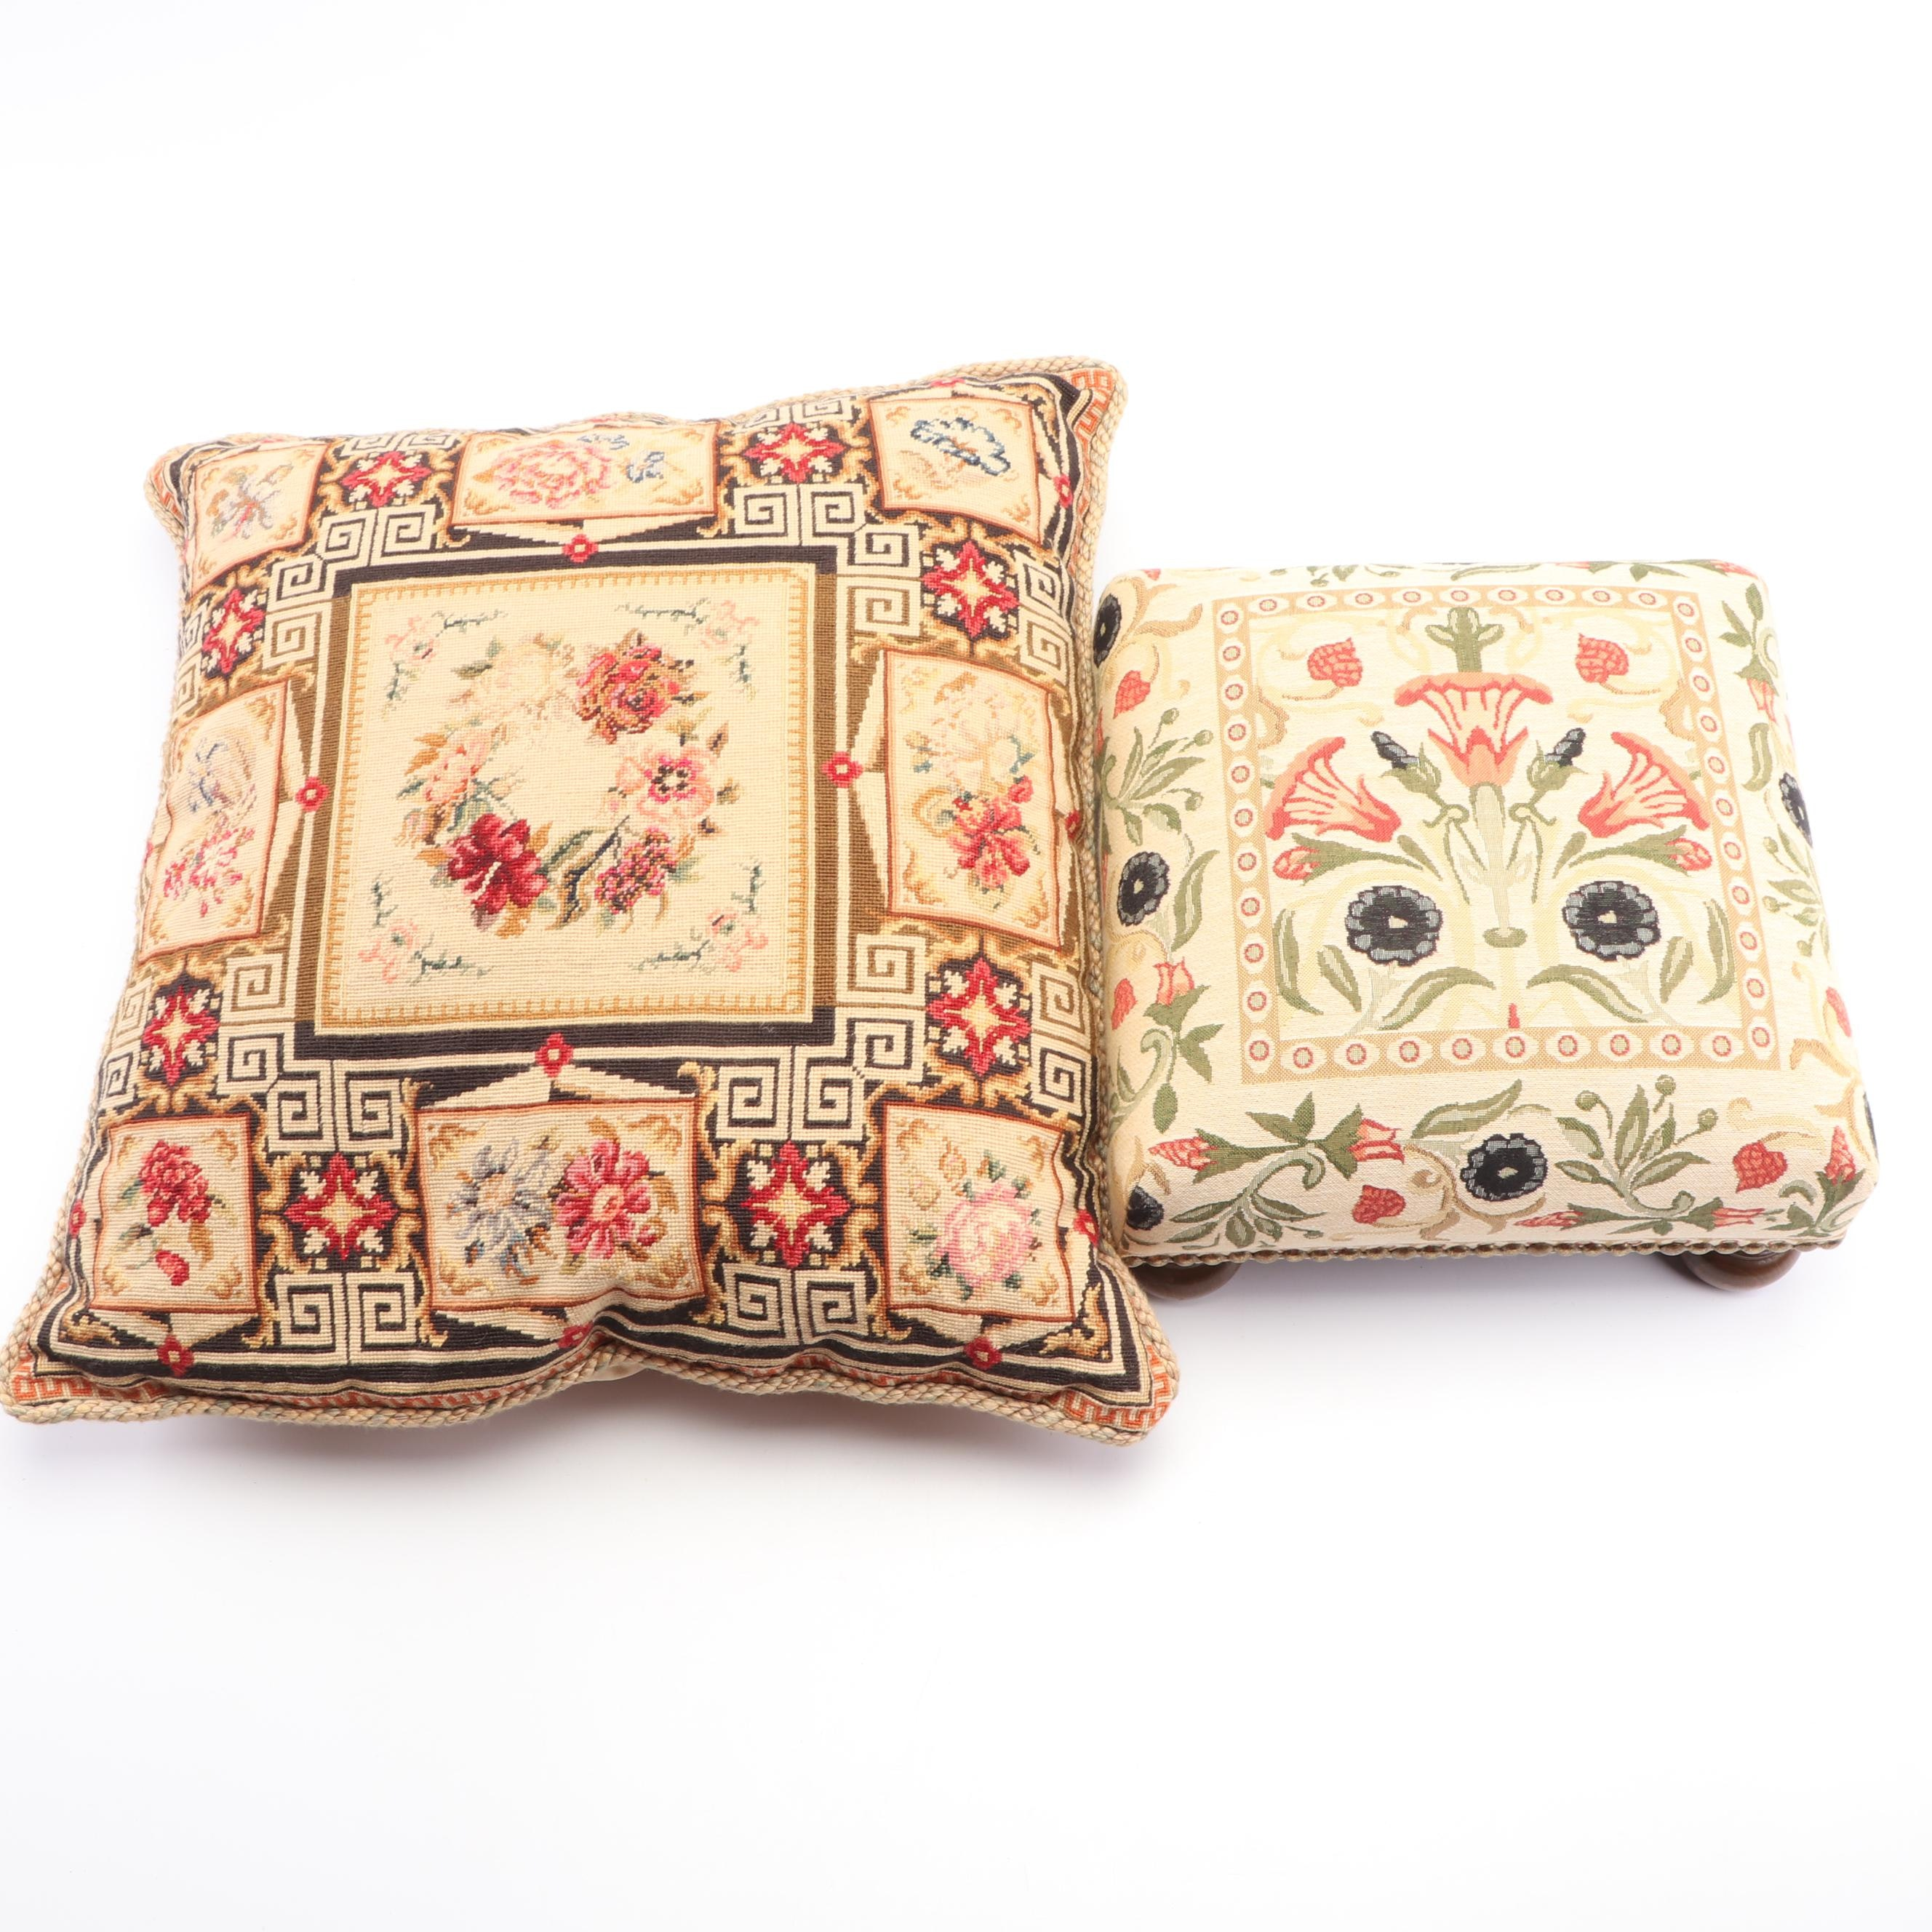 "Scully & Scully ""Primrose Cream"" Tapestry Footstool with Needlepoint Pillow"